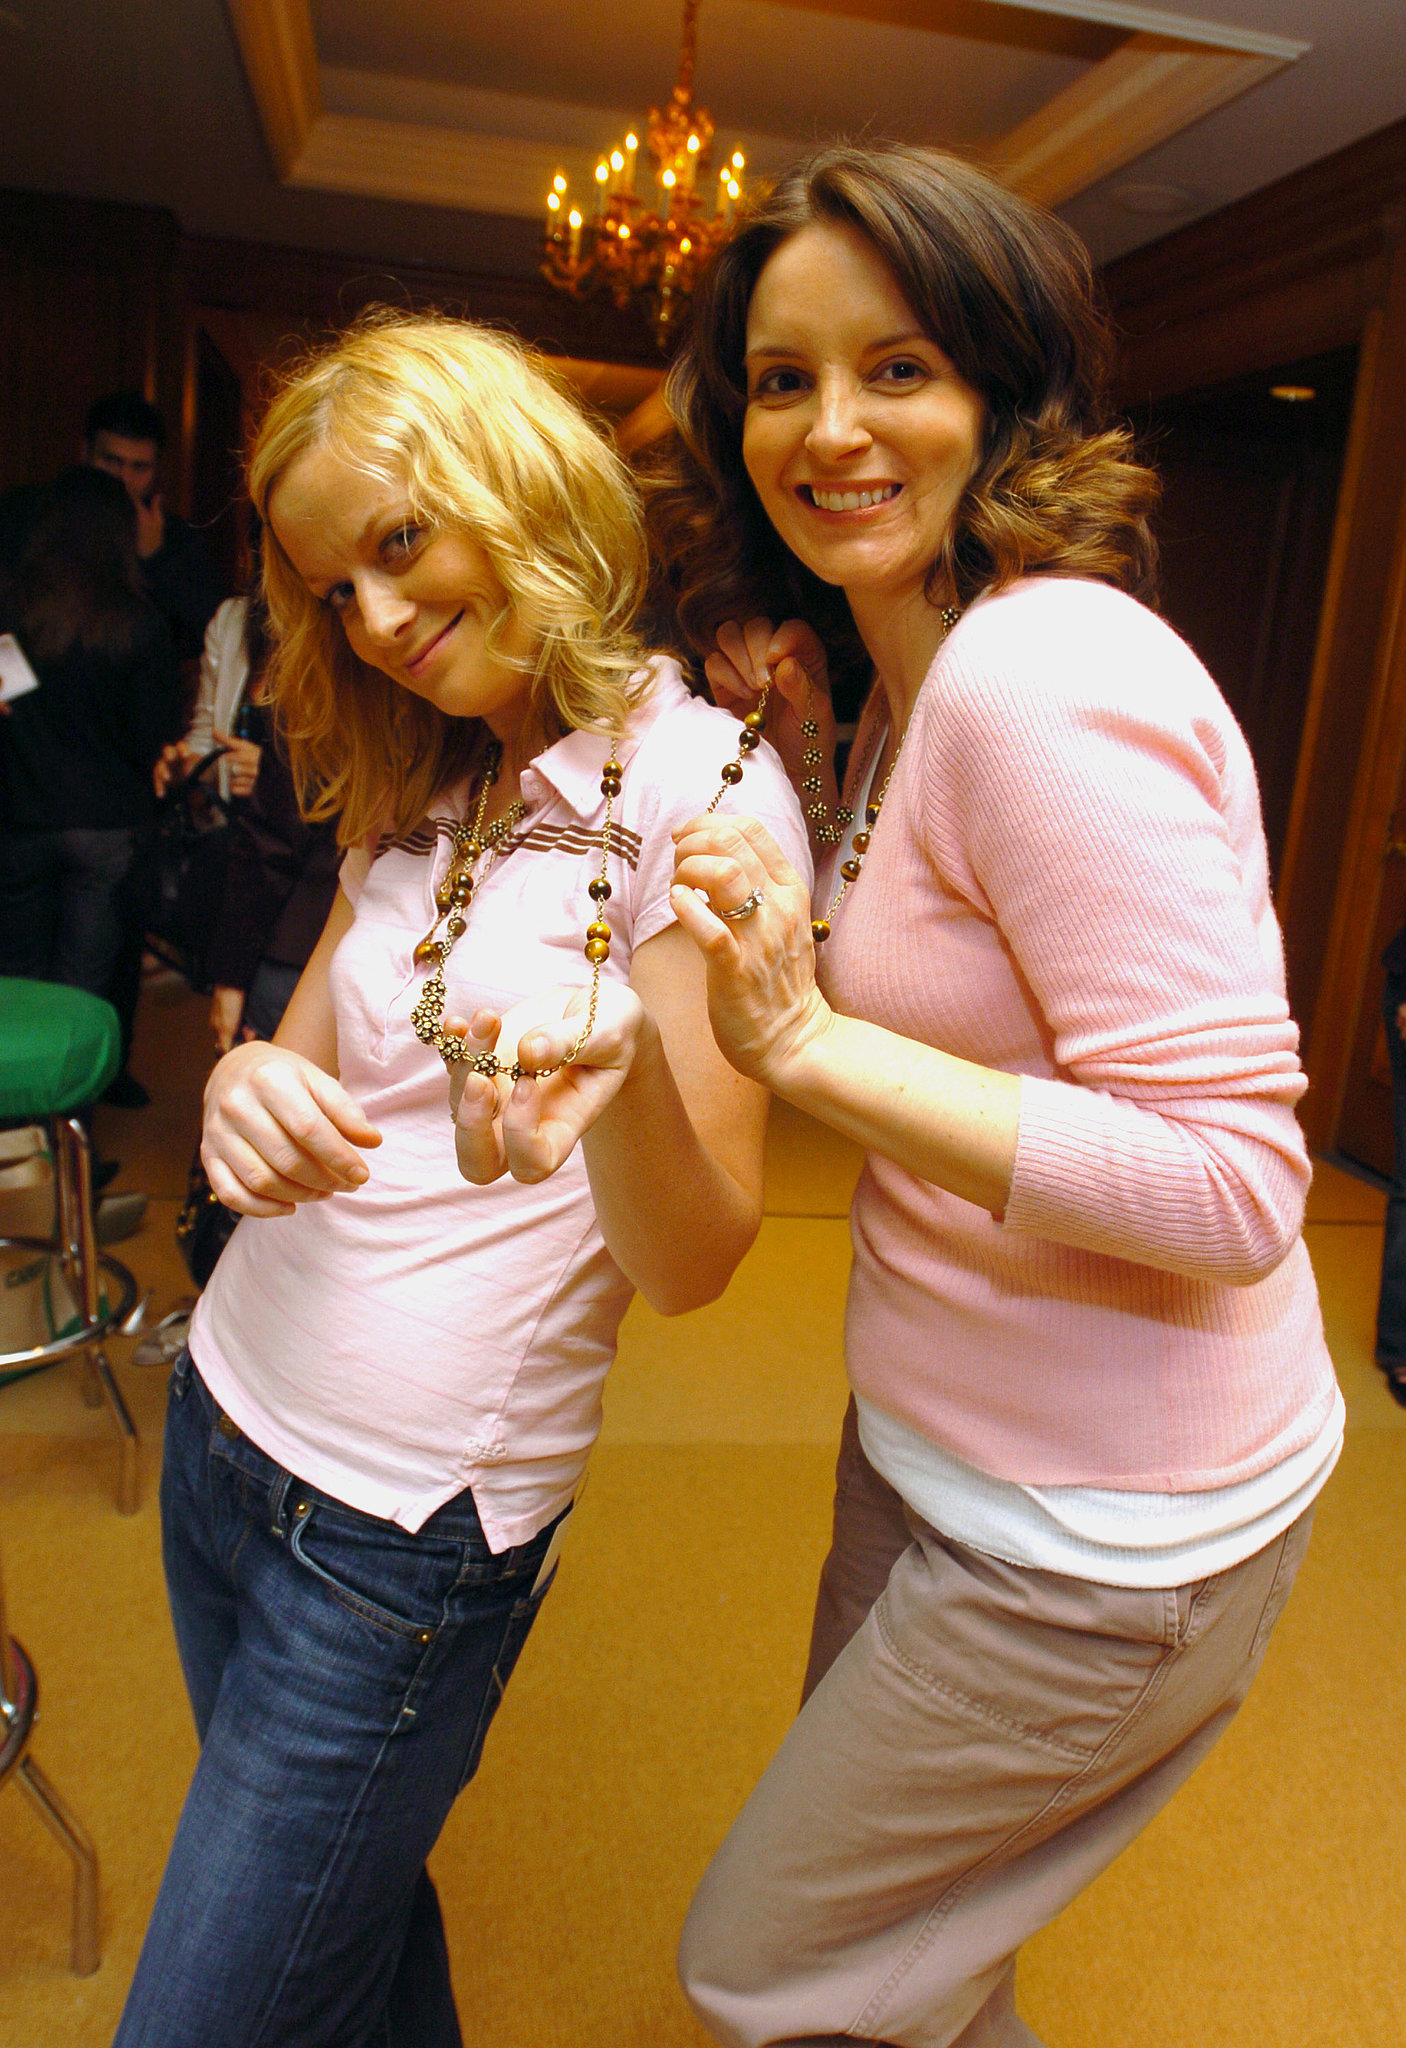 The funny friends showed off their swag at an event in May 2005.